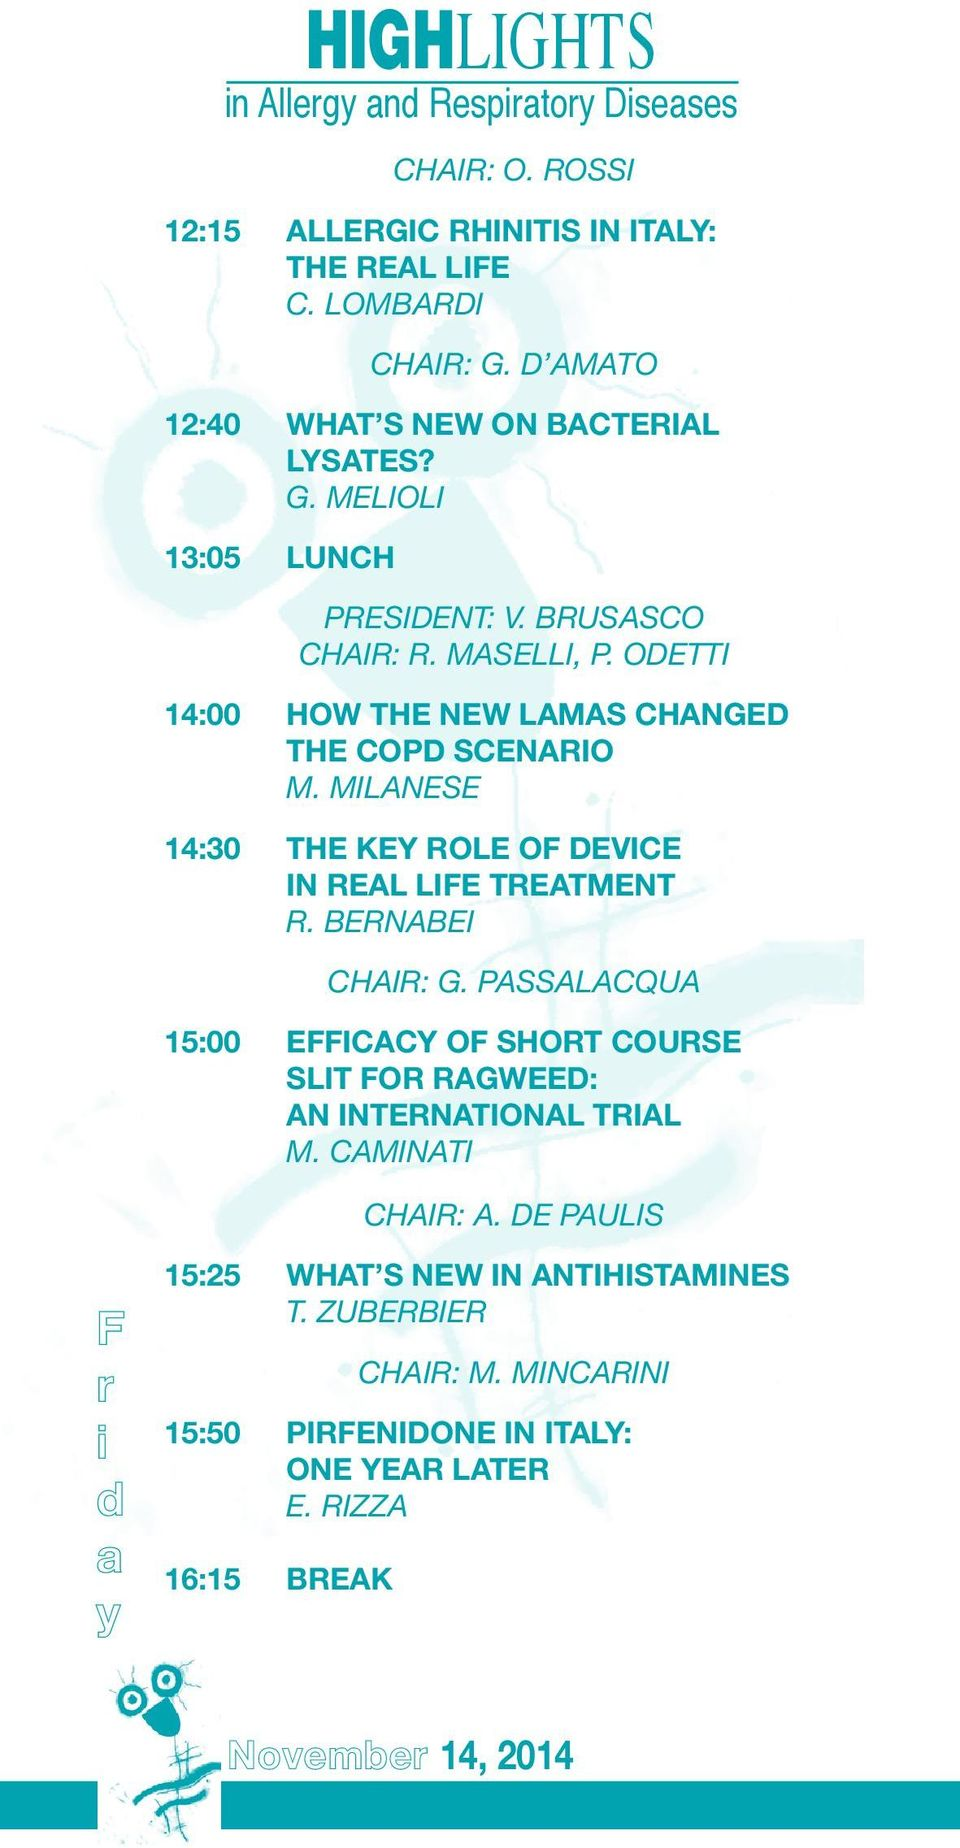 MILANESE 14:30 THE KEY ROLE OF DEVICE IN REAL LIFE TREATMENT R. BERNABEI CHAIR: G.